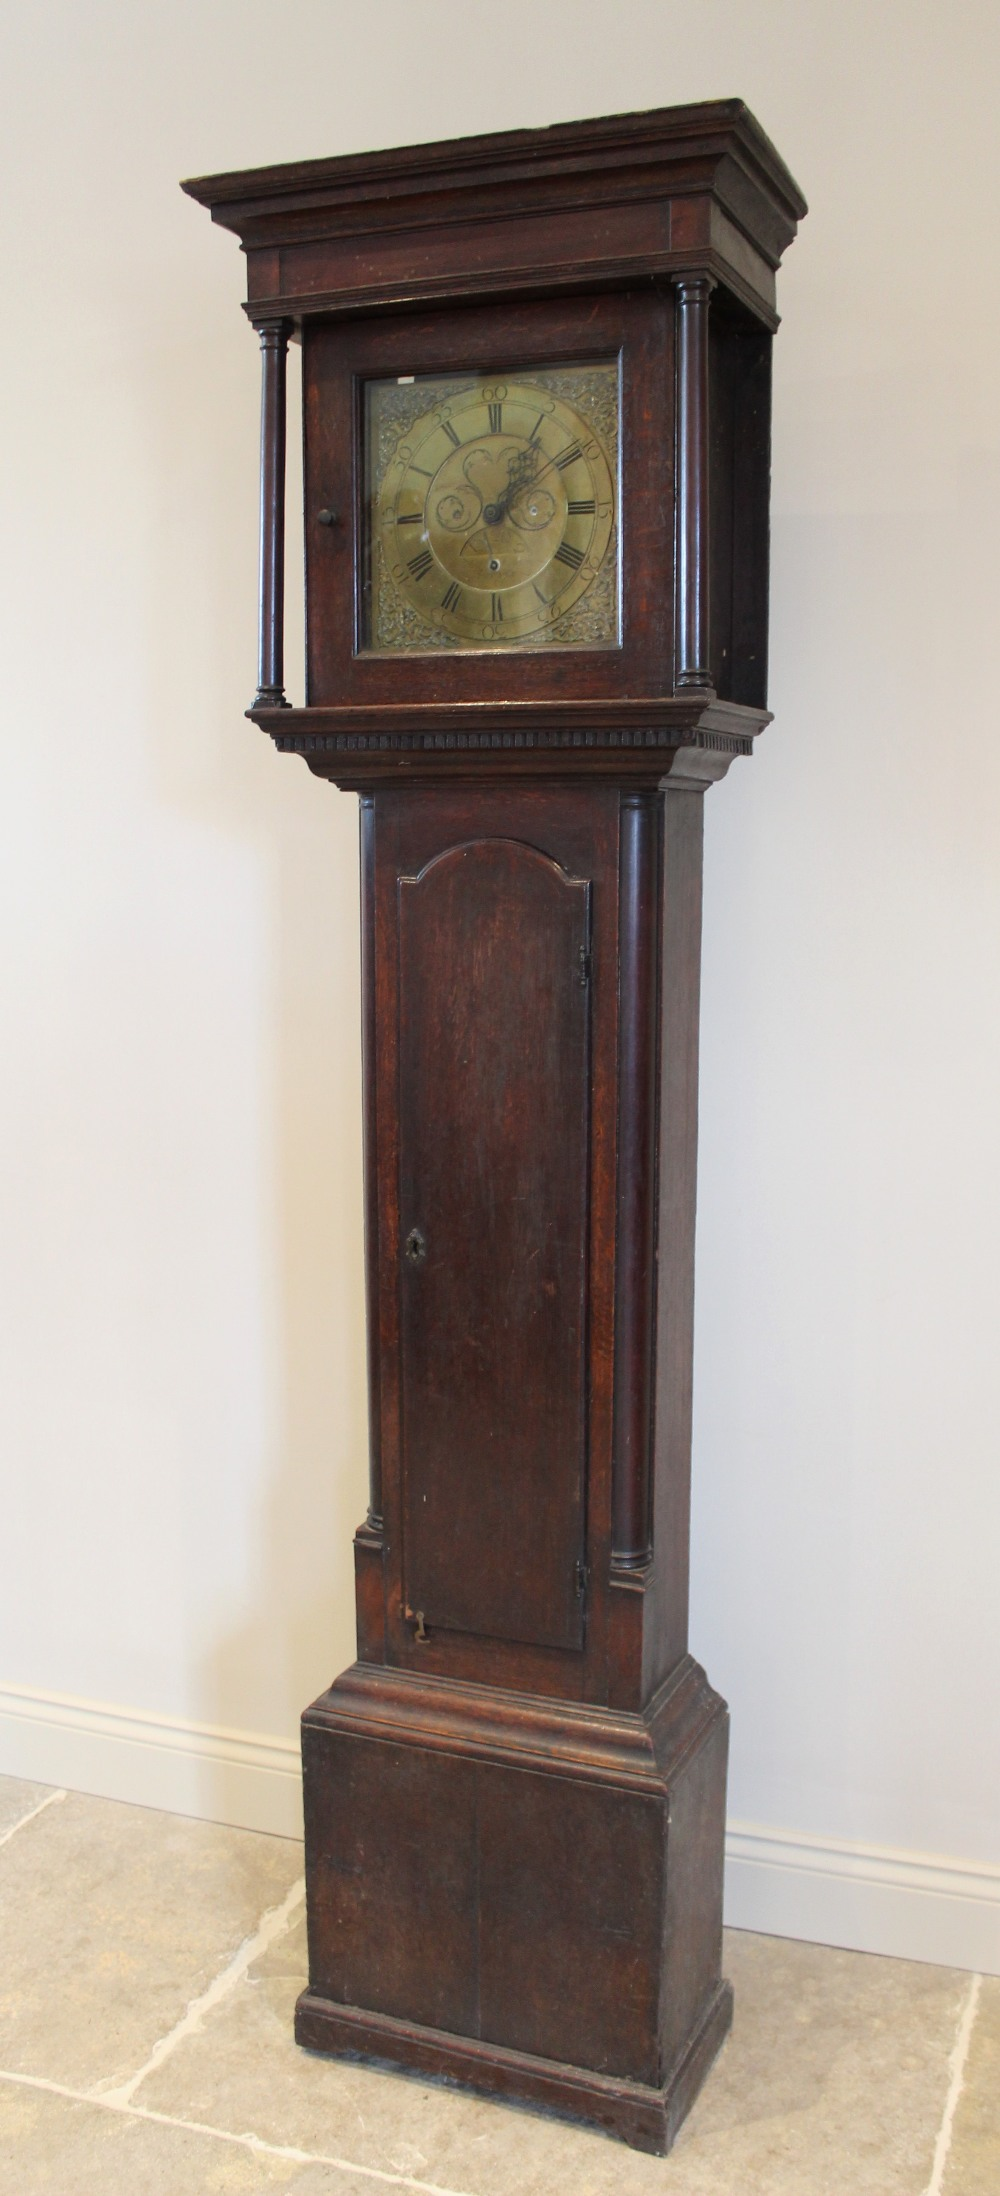 A George III oak and mahogany cross banded thirty hour longcase clock by 'Thomas Hargraves, Settle', - Image 2 of 5